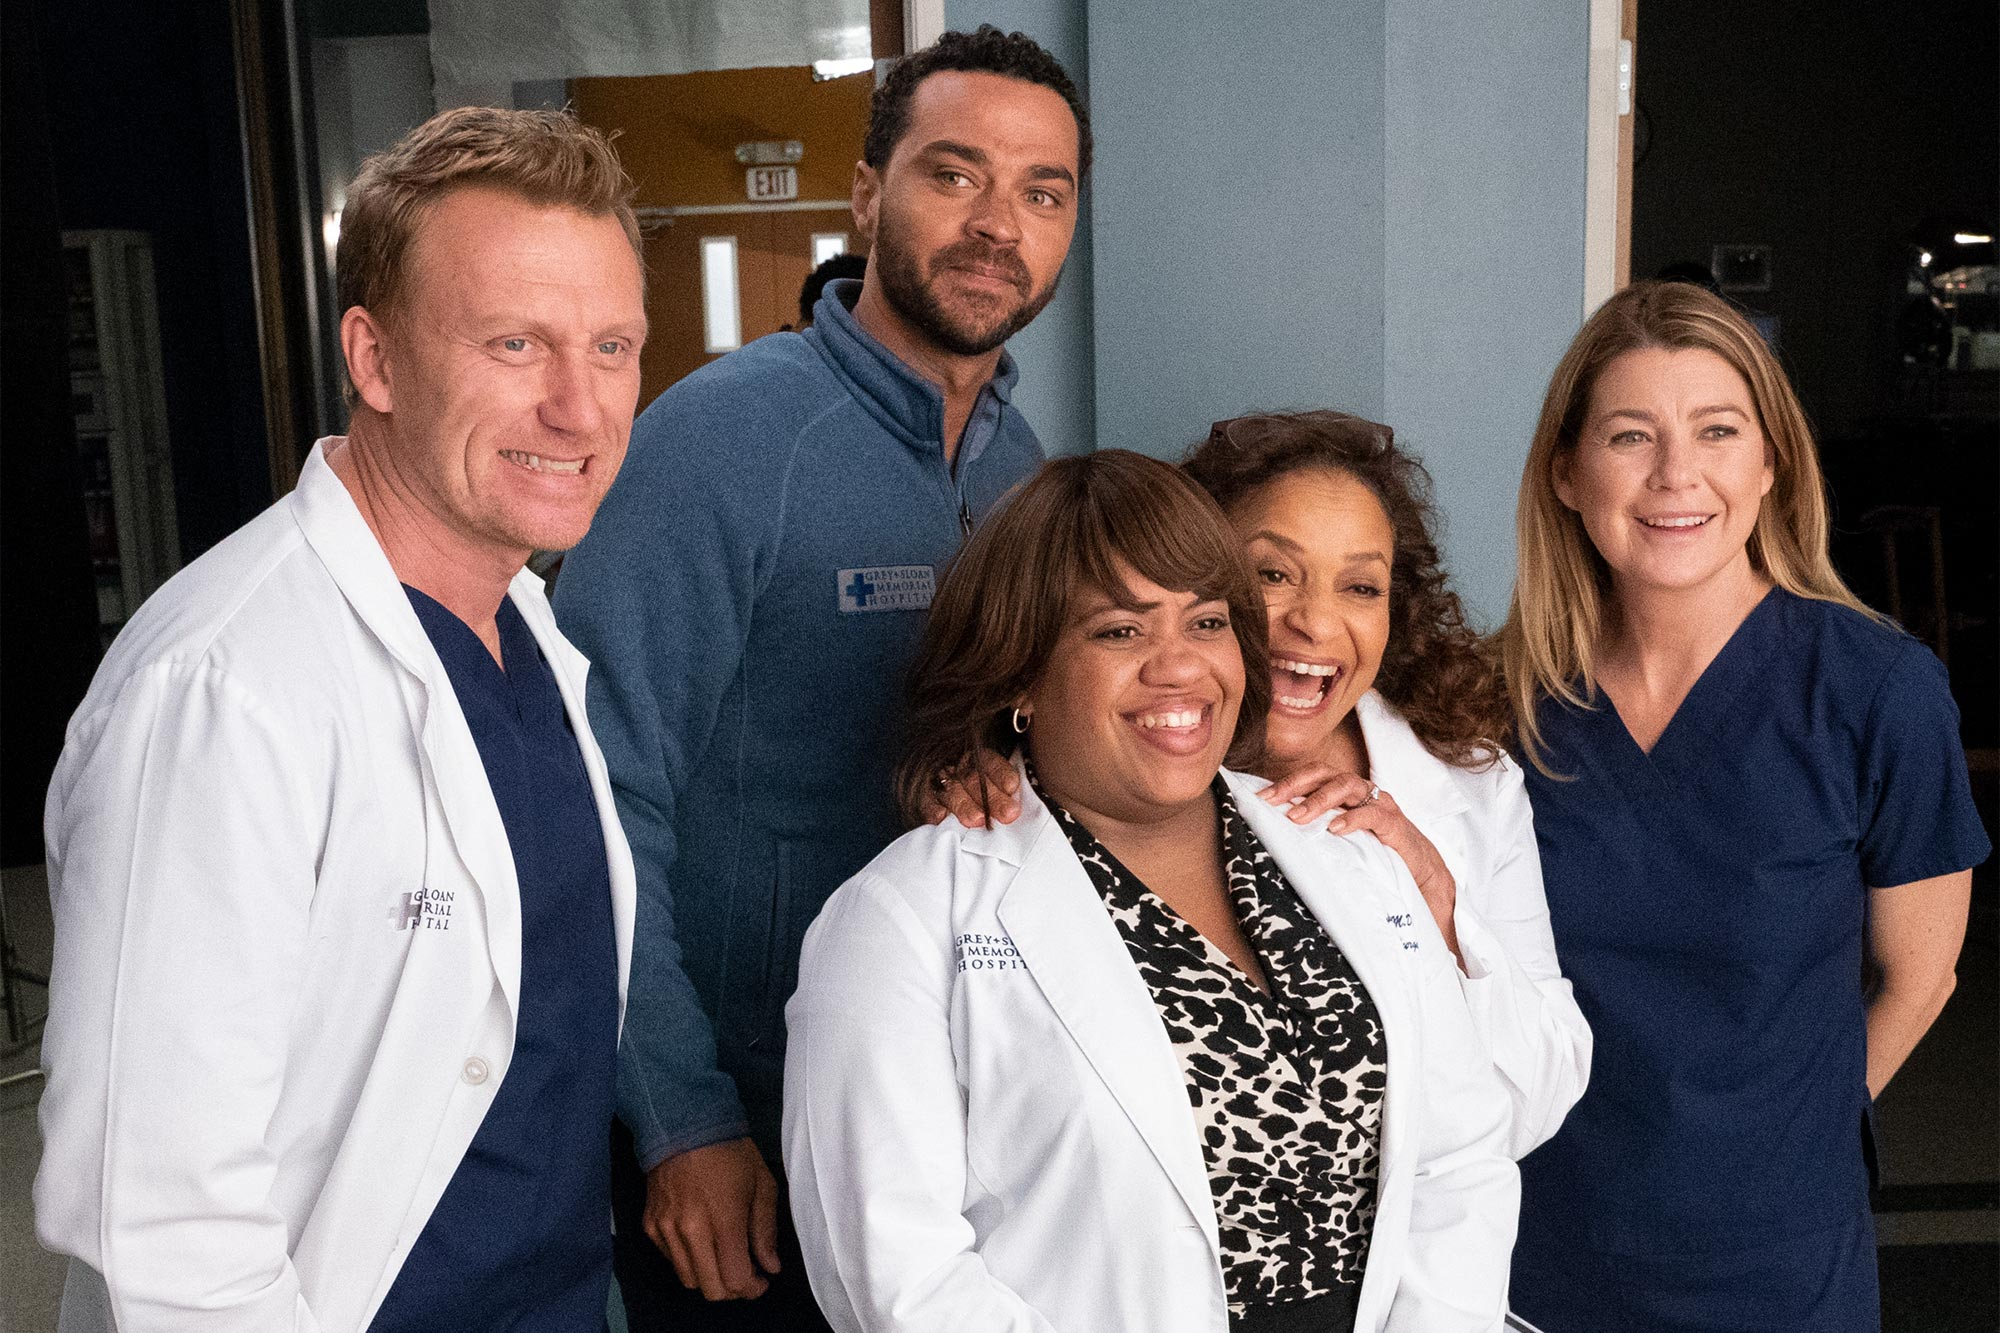 Grey S Anatomy Cast Thanks Doctors On National Doctor S Day Ew Com